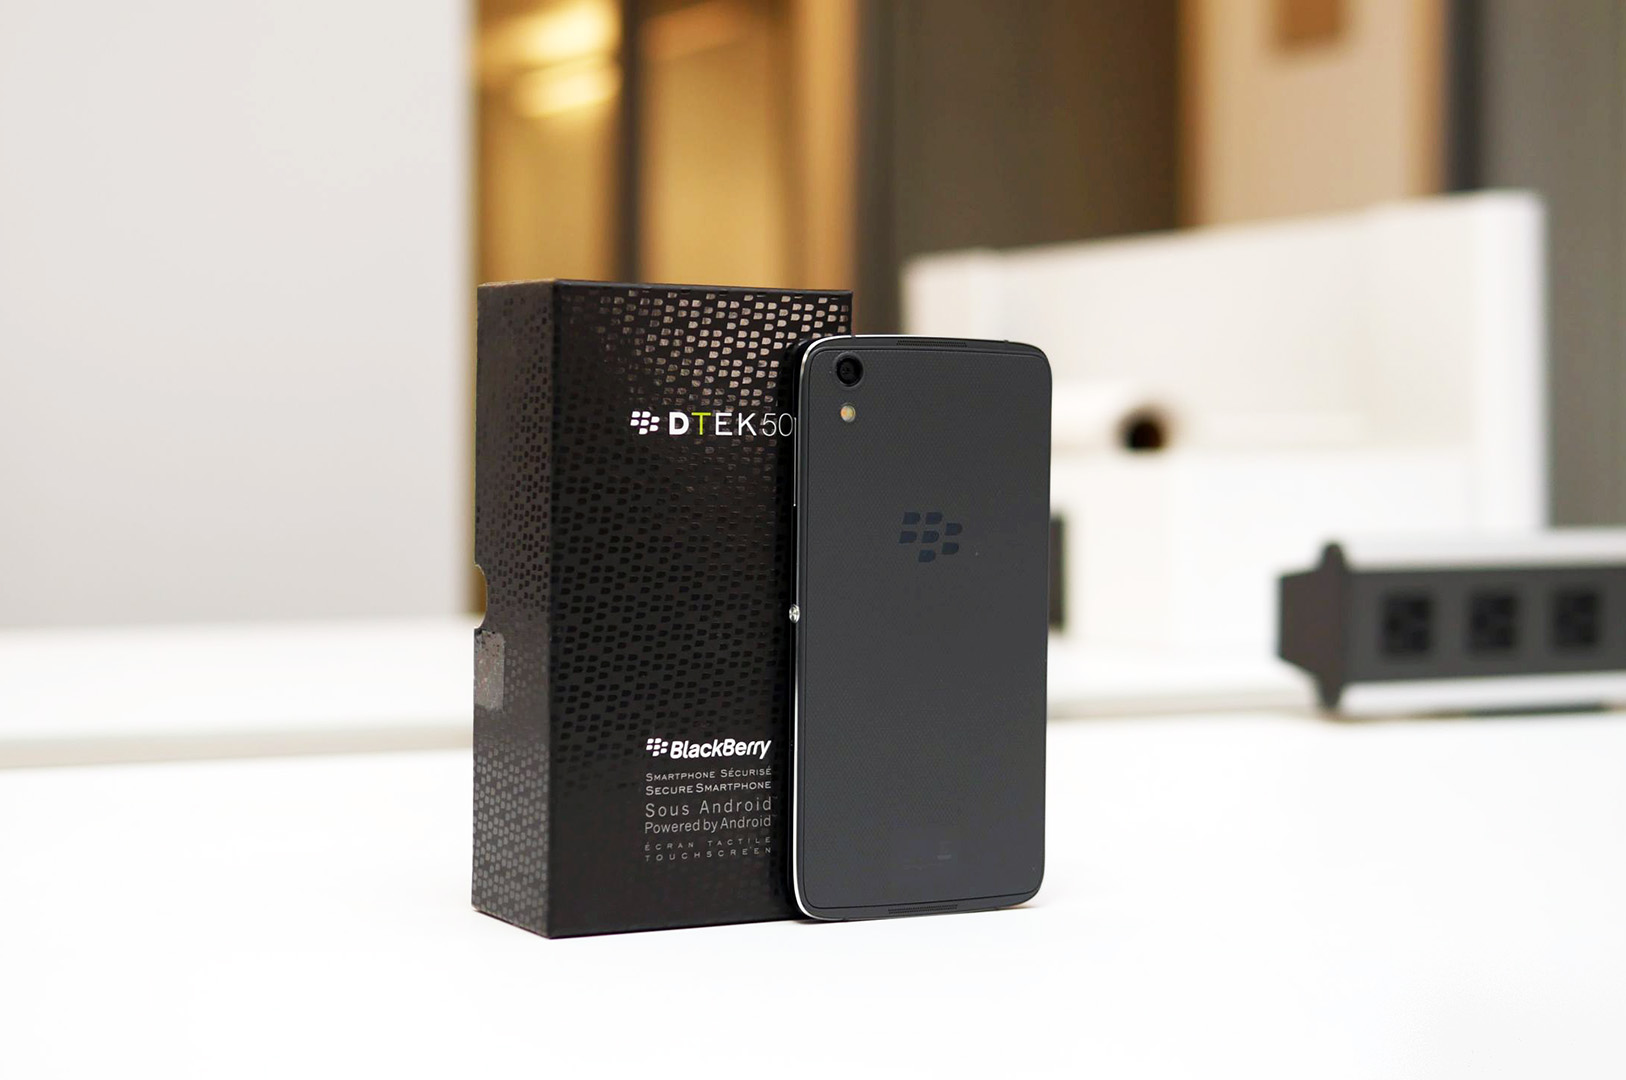 BlackBerry-DTEK50-hands-on-3